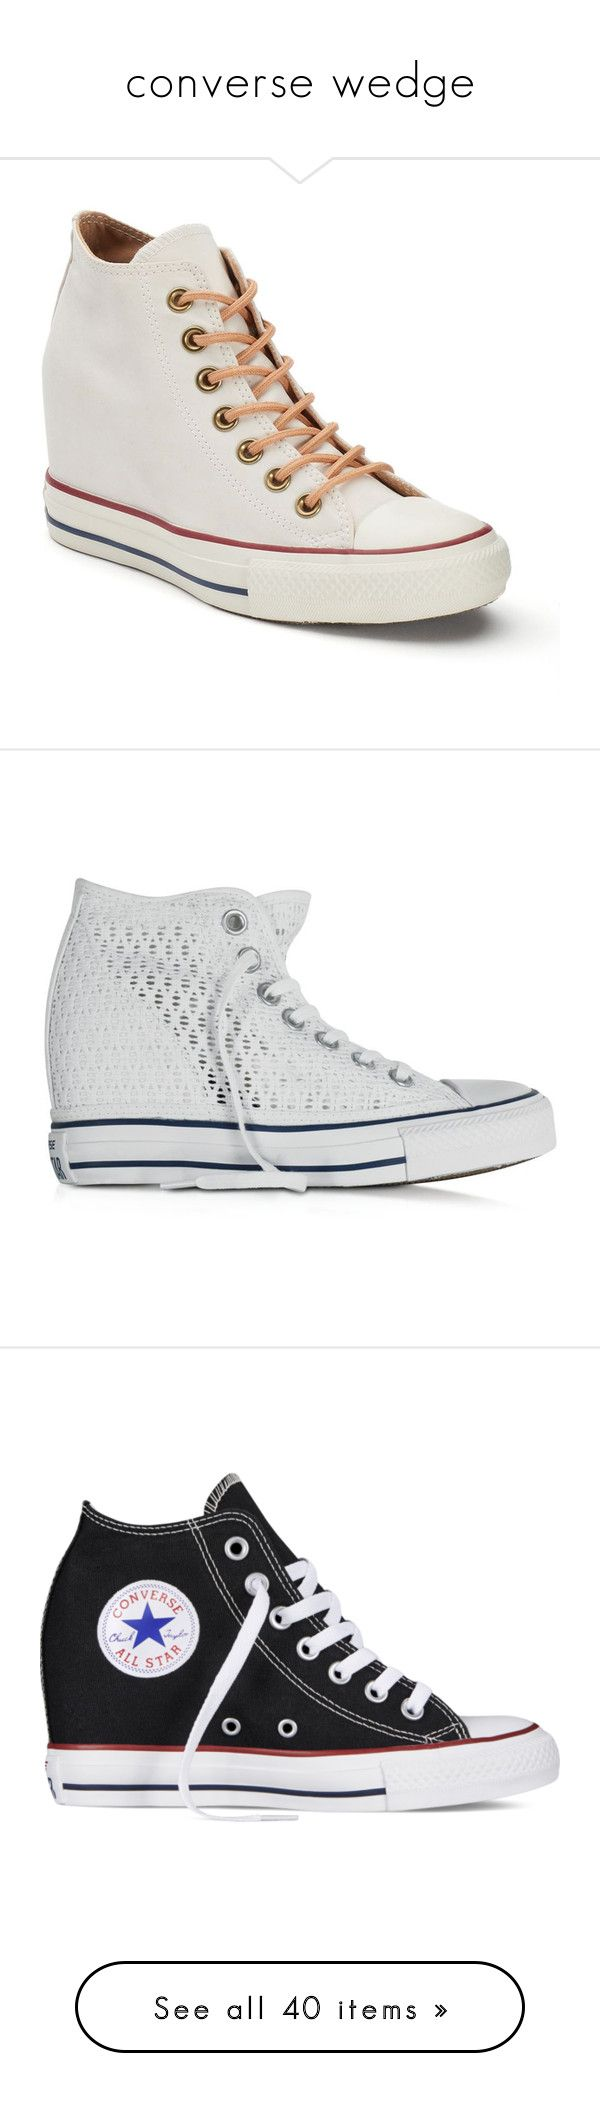 """""""converse wedge"""" by lulucosby ❤ liked on Polyvore featuring shoes, sneakers, lace up high top sneakers, high heeled footwear, high top trainers, high heel sneakers, high top hidden wedge sneakers, white oth, white canvas sneakers and hidden wedge shoes"""